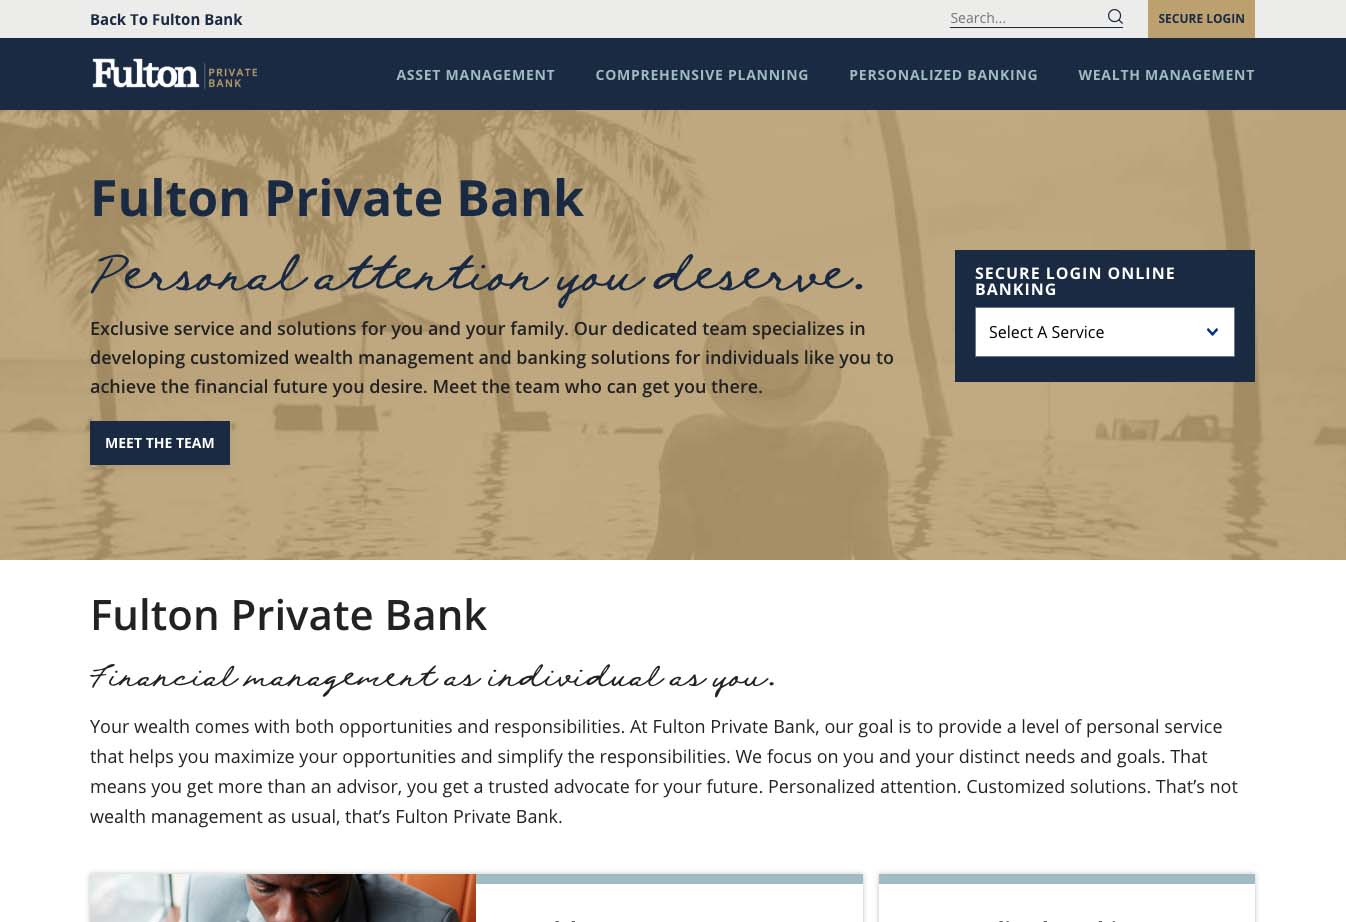 Part of Fulton Private Bank homepage design.